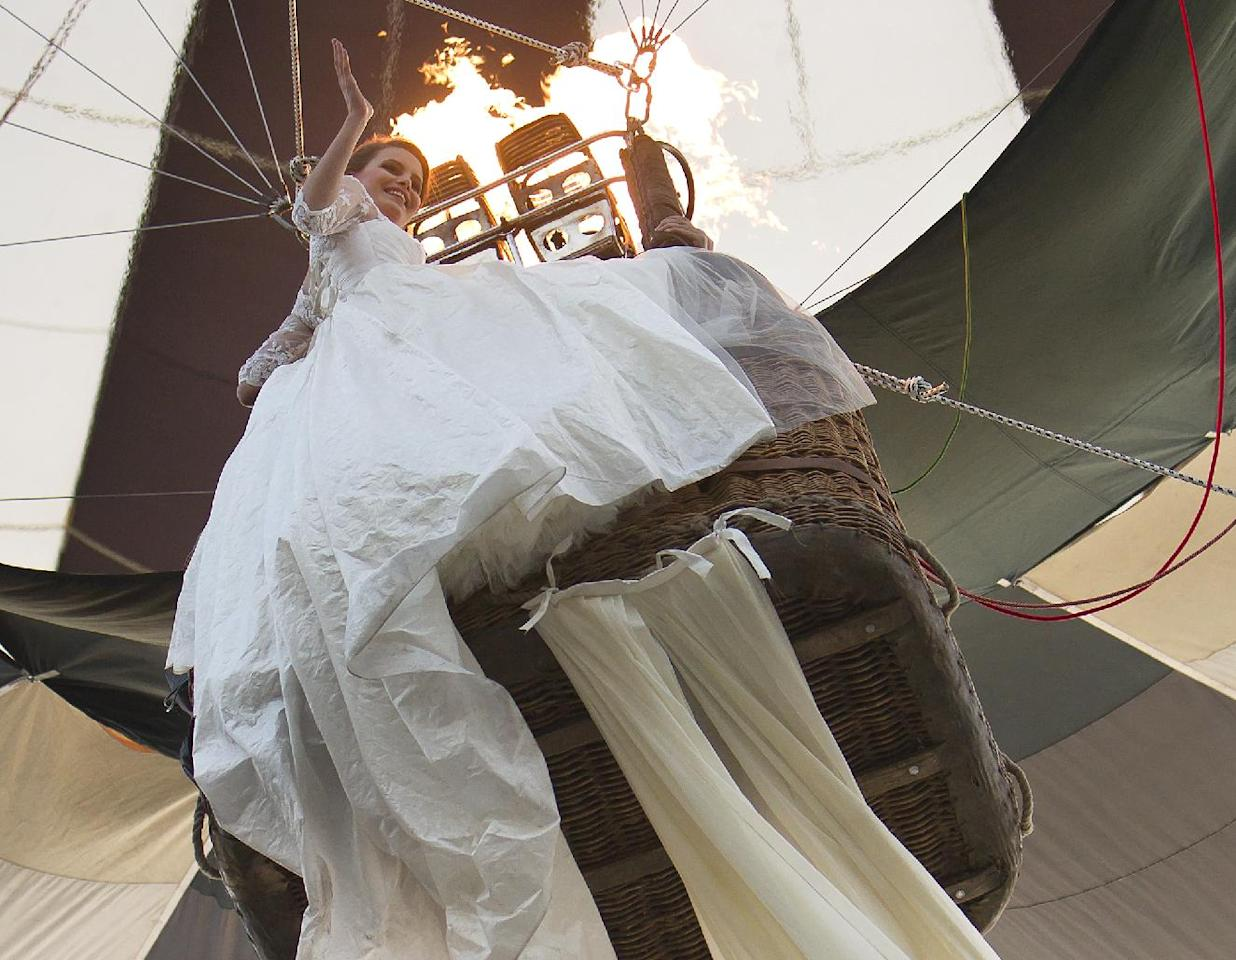 Emma Dumitrescu, 17 years old, a model rides in a hot air balloon to show the worlds longest wedding dress train during a Guinness World Record attempt in Bucharest, Romania, Tuesday, March 20, 1012. Romania has set the world record for the world's longest bridal train.The nearly 3-kilometer (1.86-mile) long ivory train, which took 100 days to stitch, was showcased dramatically on Tuesday on the boulevard leading up to the giant palace built by late dictator Nicolae Ceausescu, seen in background. The previous record was 2.488 Km. (AP Photo/Vadim Ghirda)